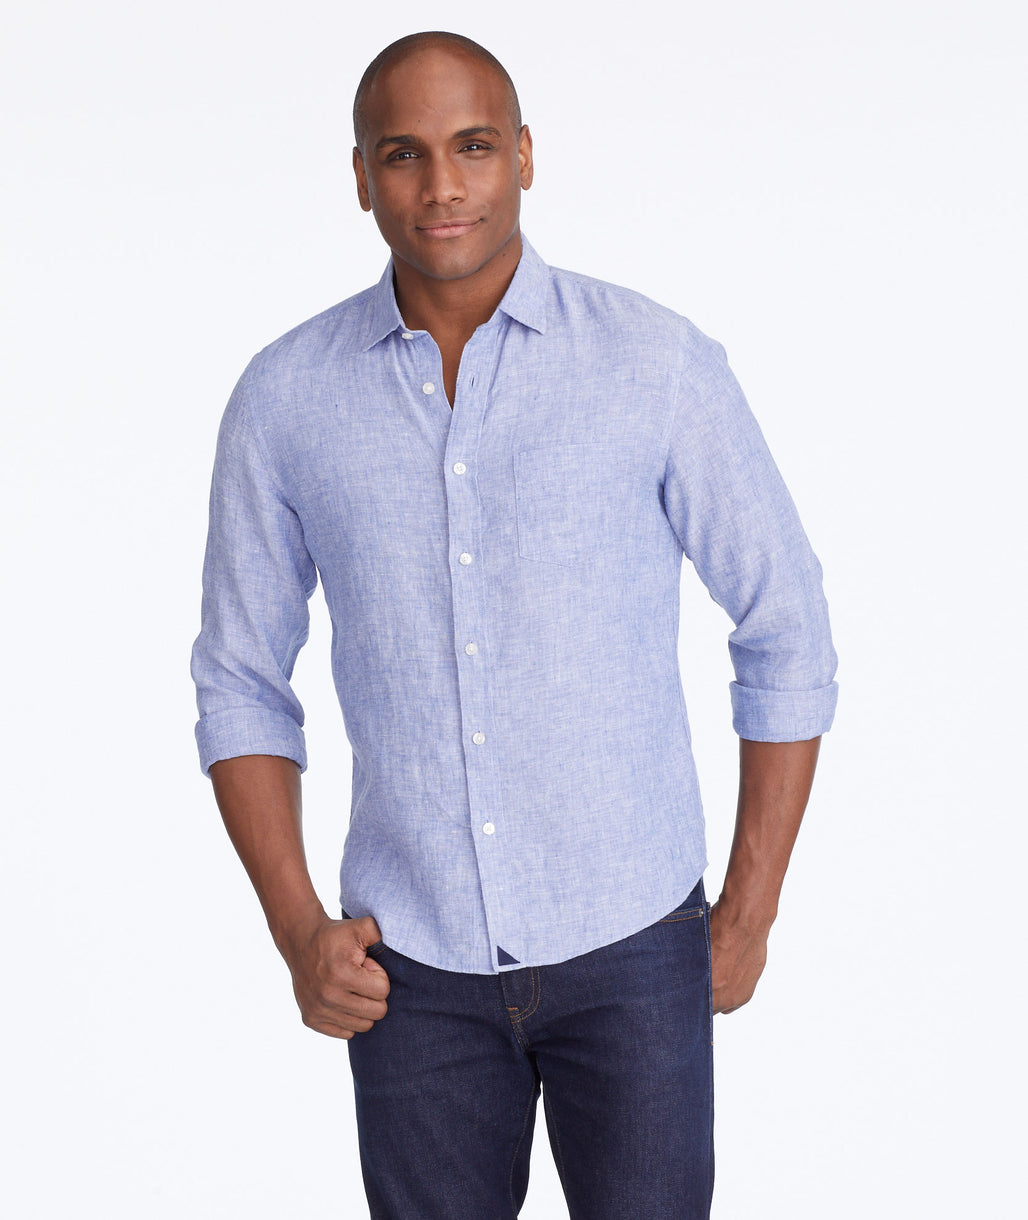 Model wearing a Blue Wrinkle-Resistant Linen Vin Santo Shirt